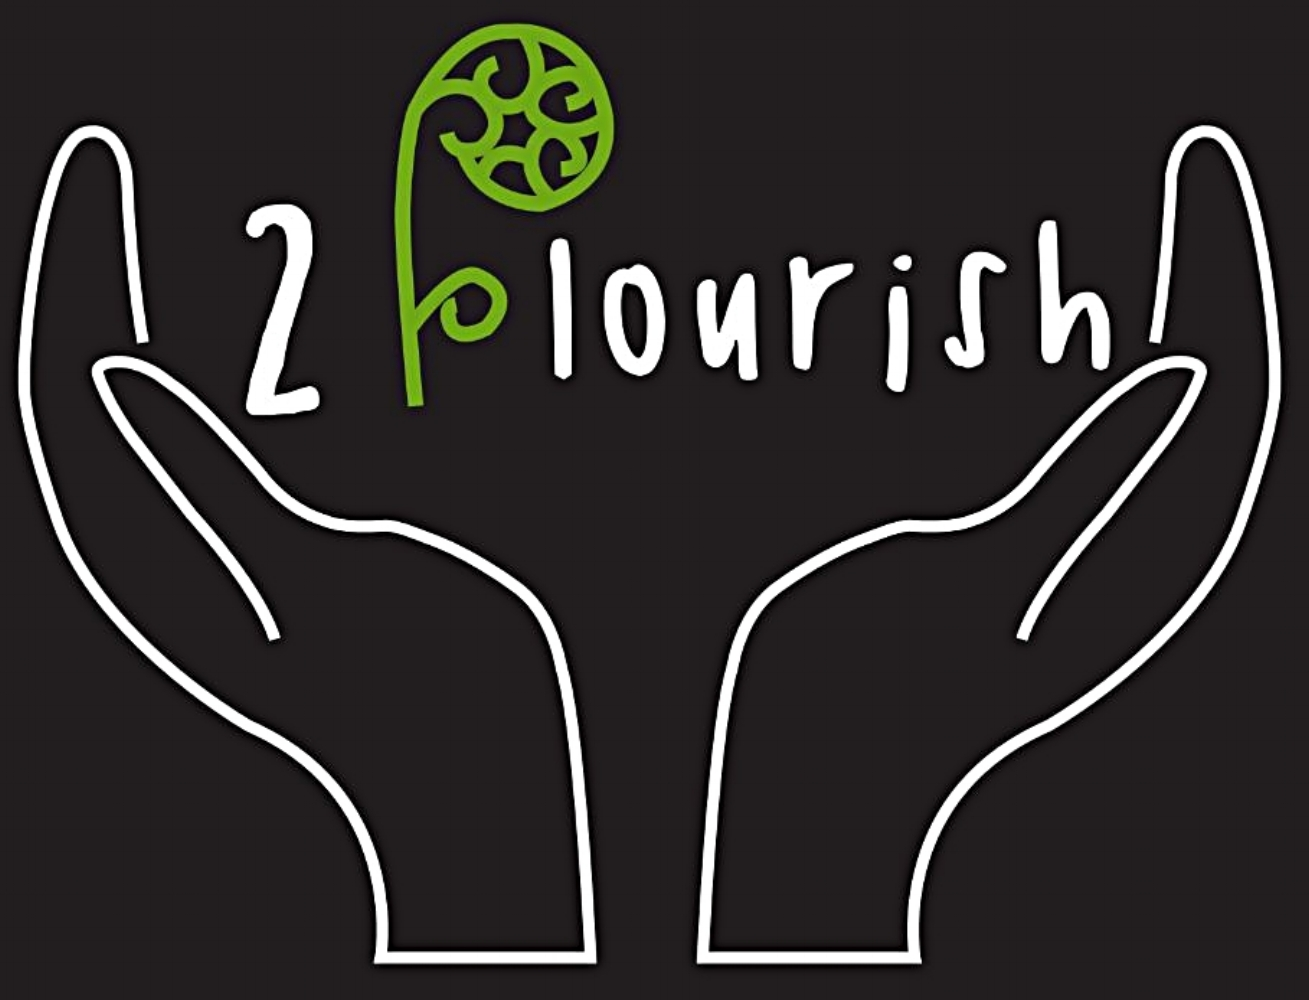 2flourish - Enabling Strengths for Lifelong Learning